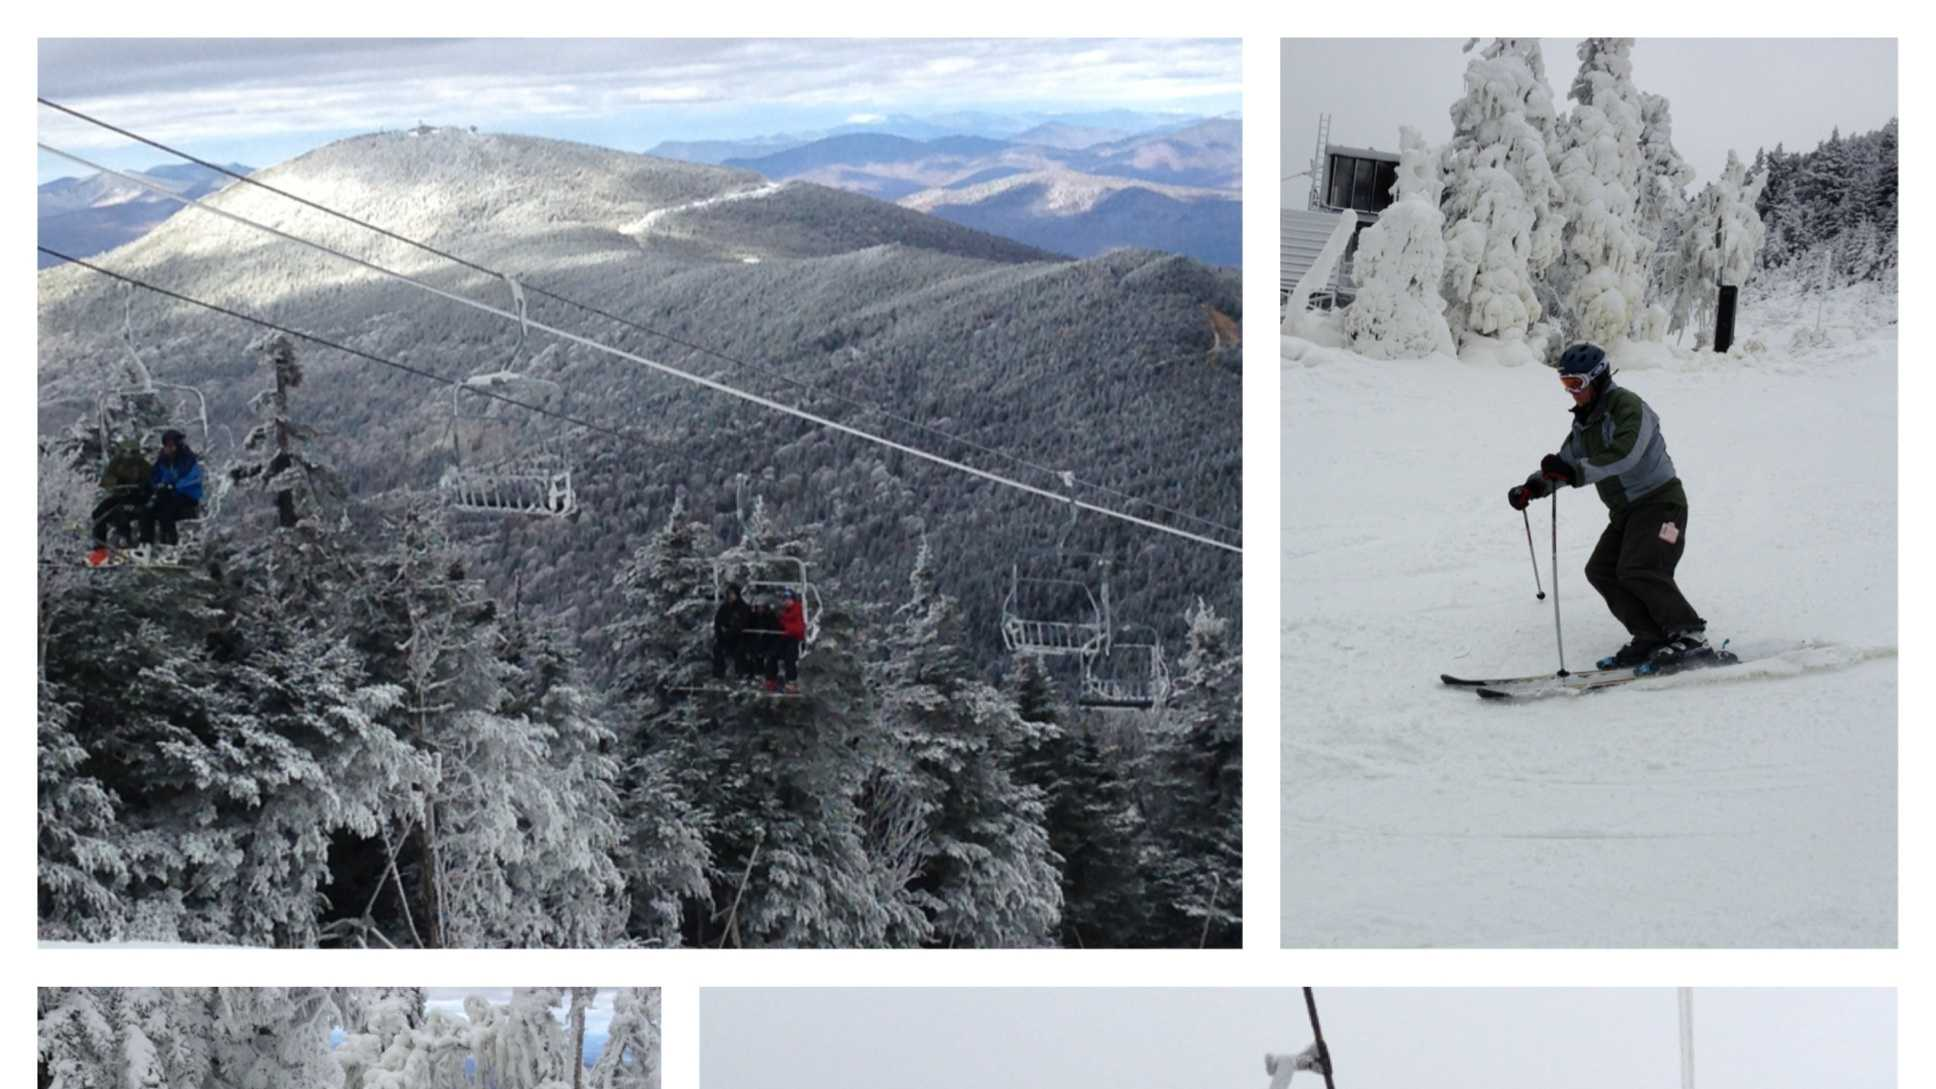 Ski industry threatened by long-term climate change, Vt. report warns - img